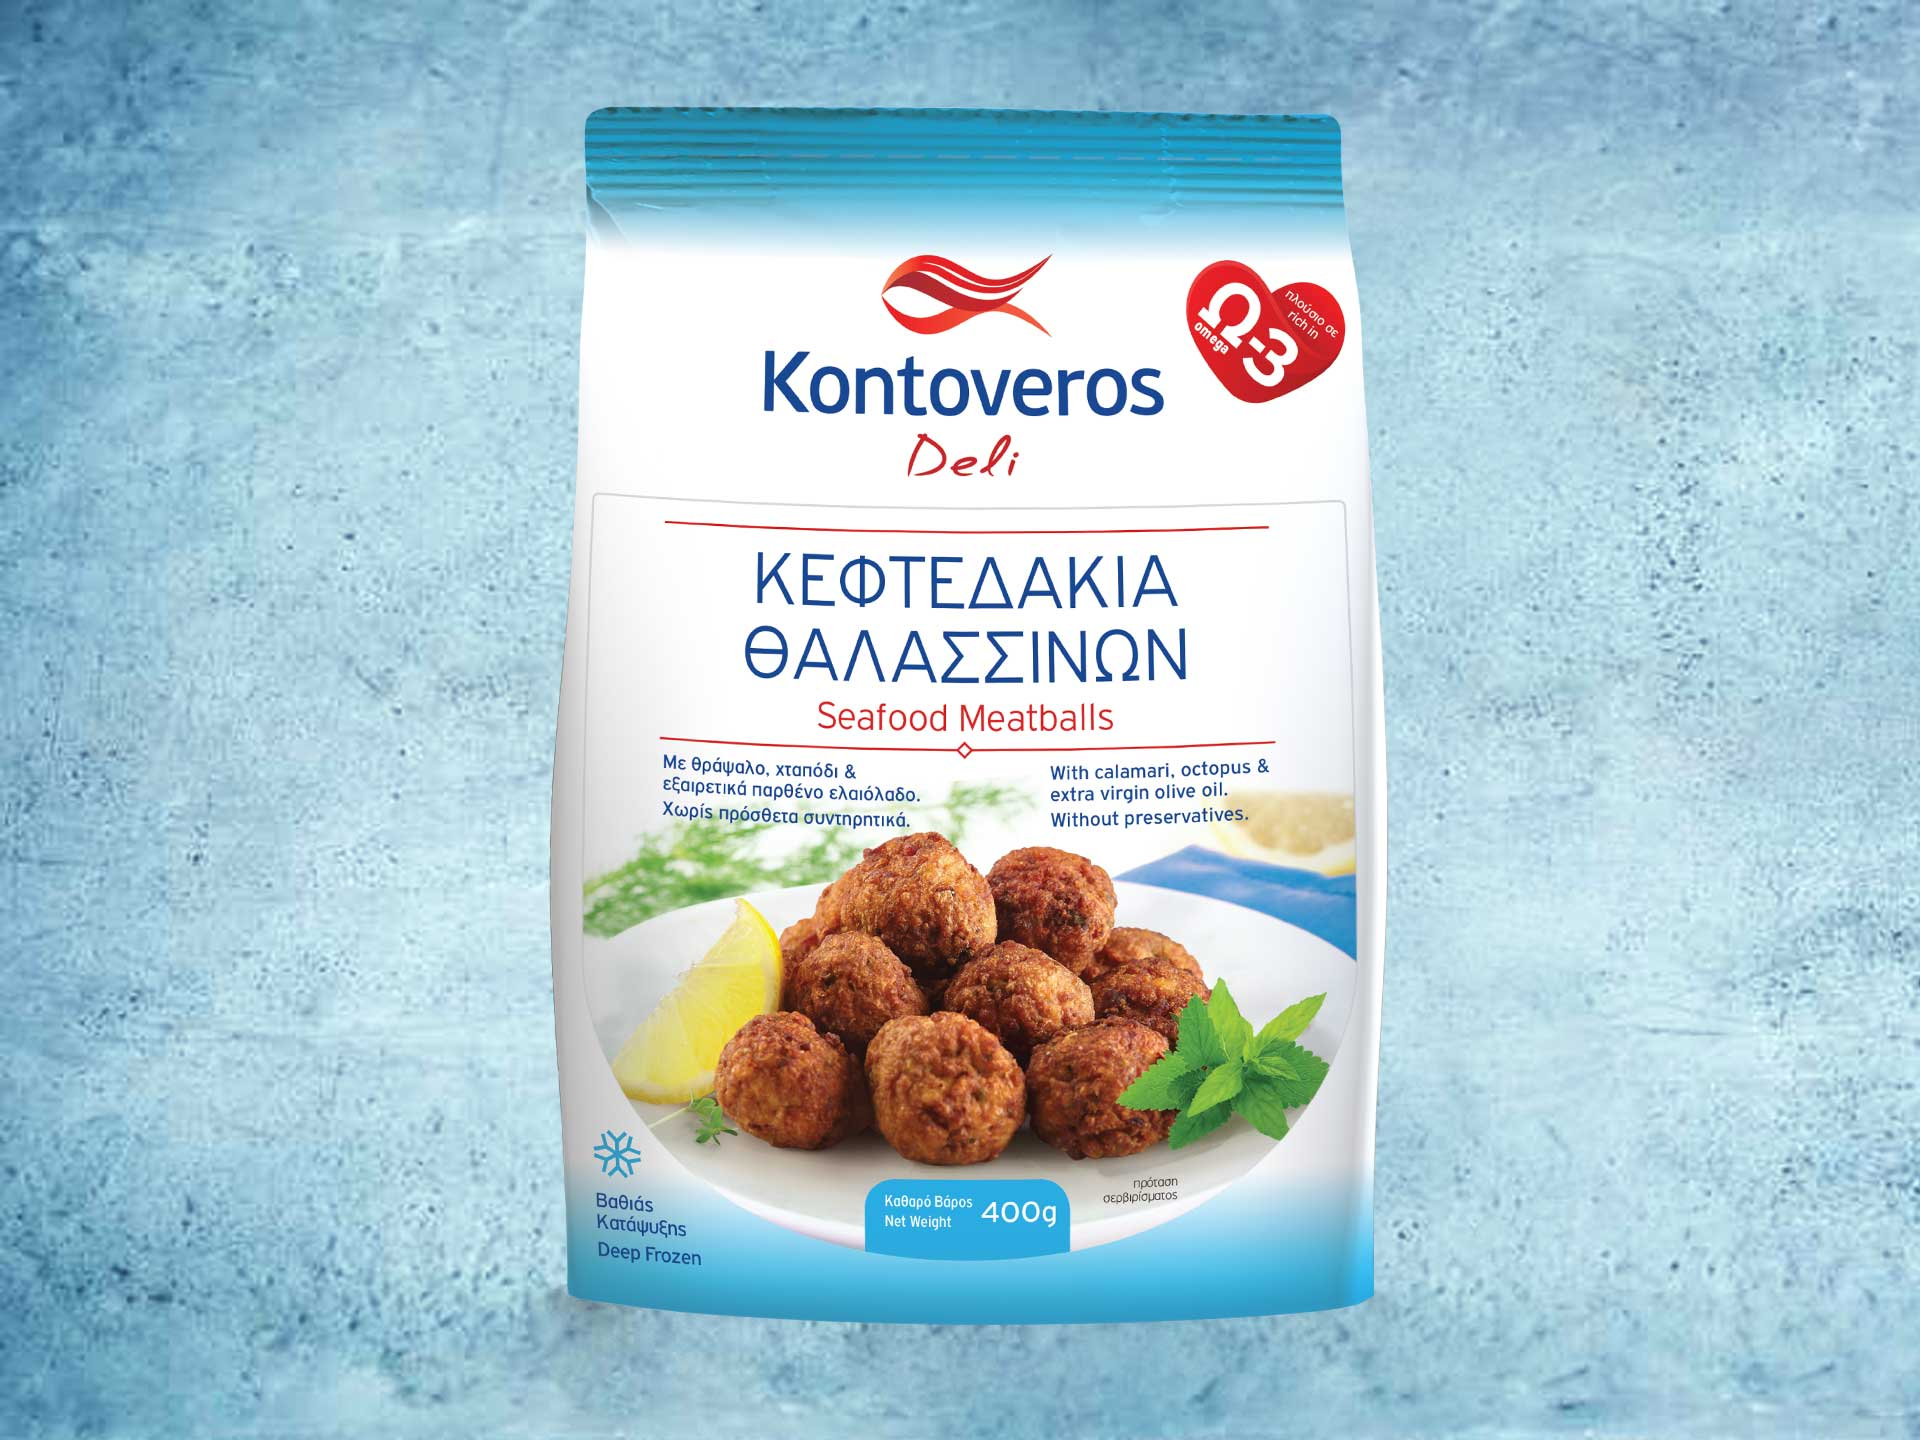 Packaging Design Kontoveros Deli Seafood Meatballs